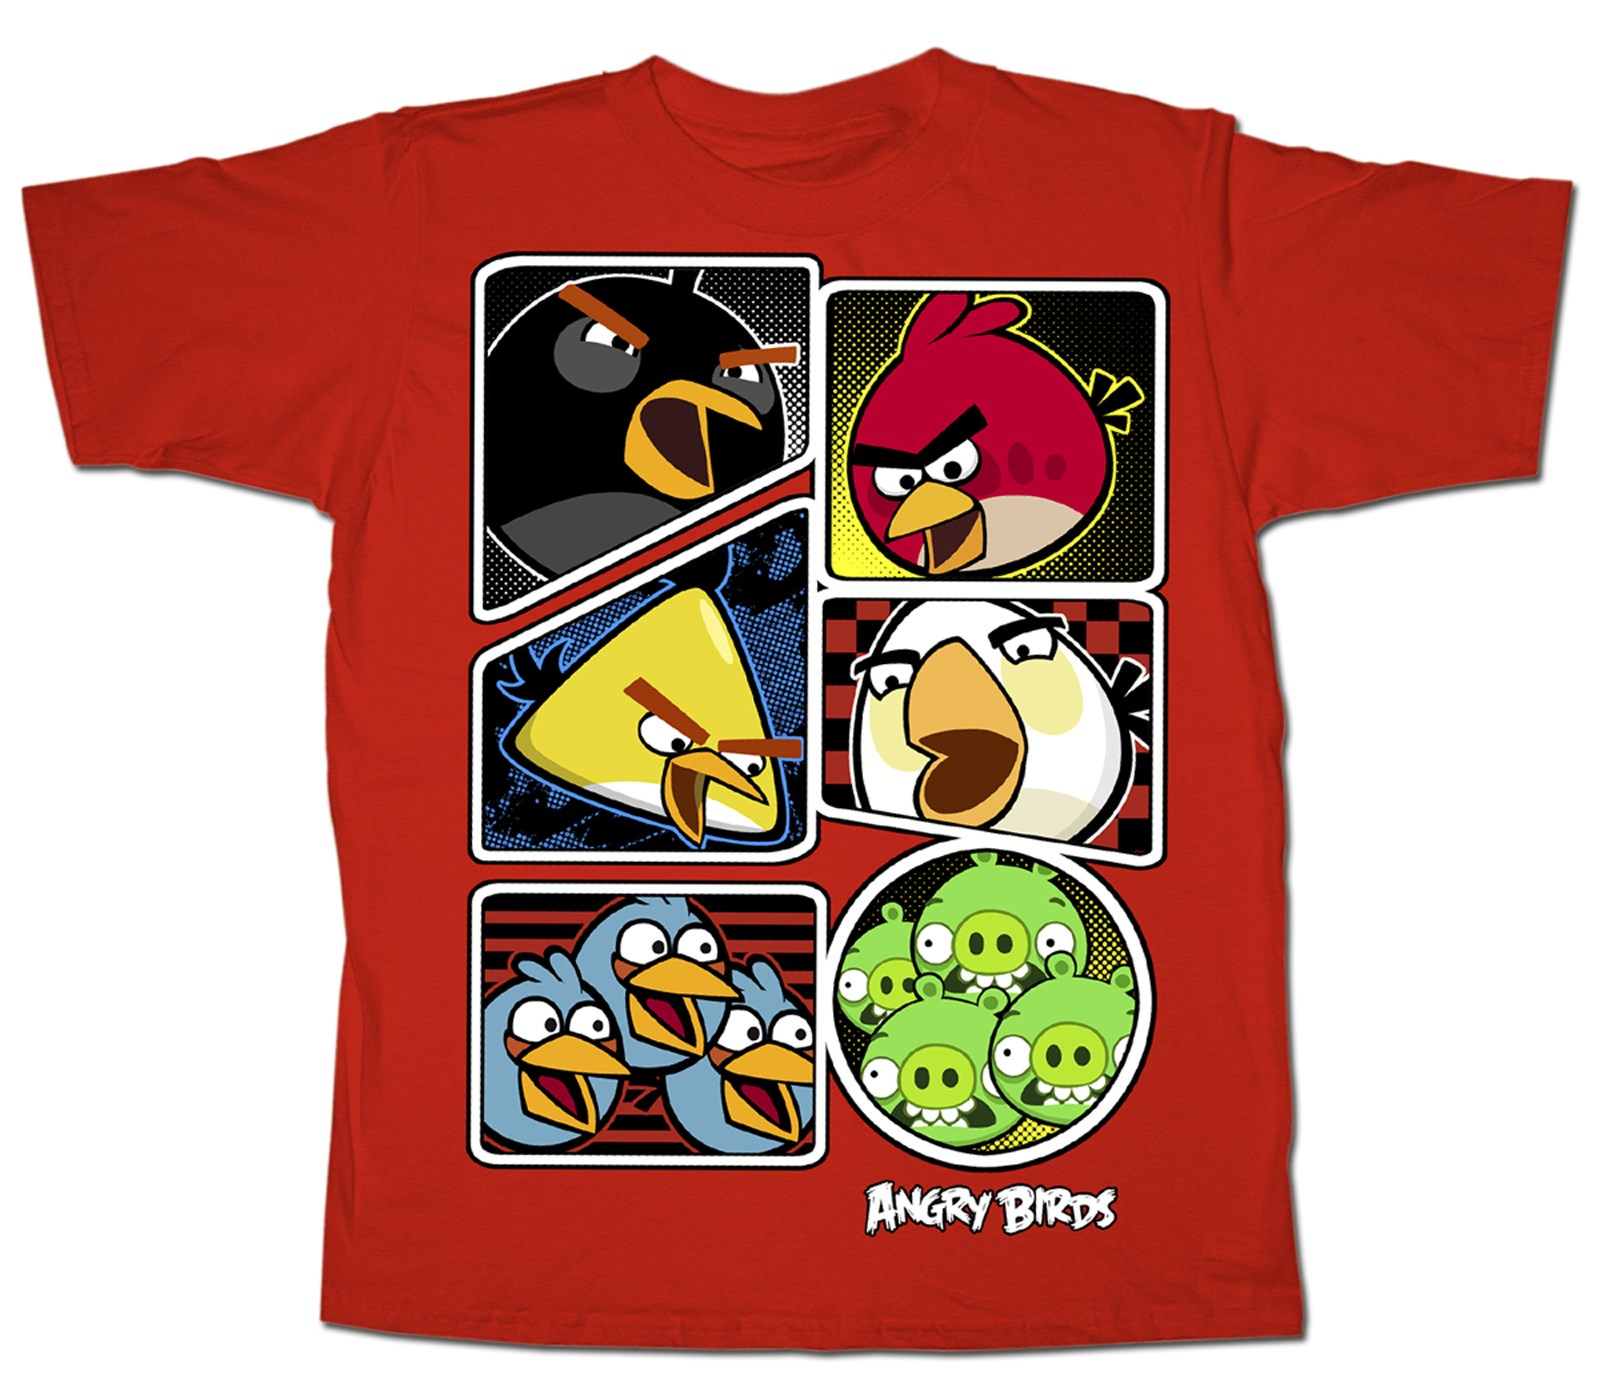 Get Them Red Angry Birds T-Shirt